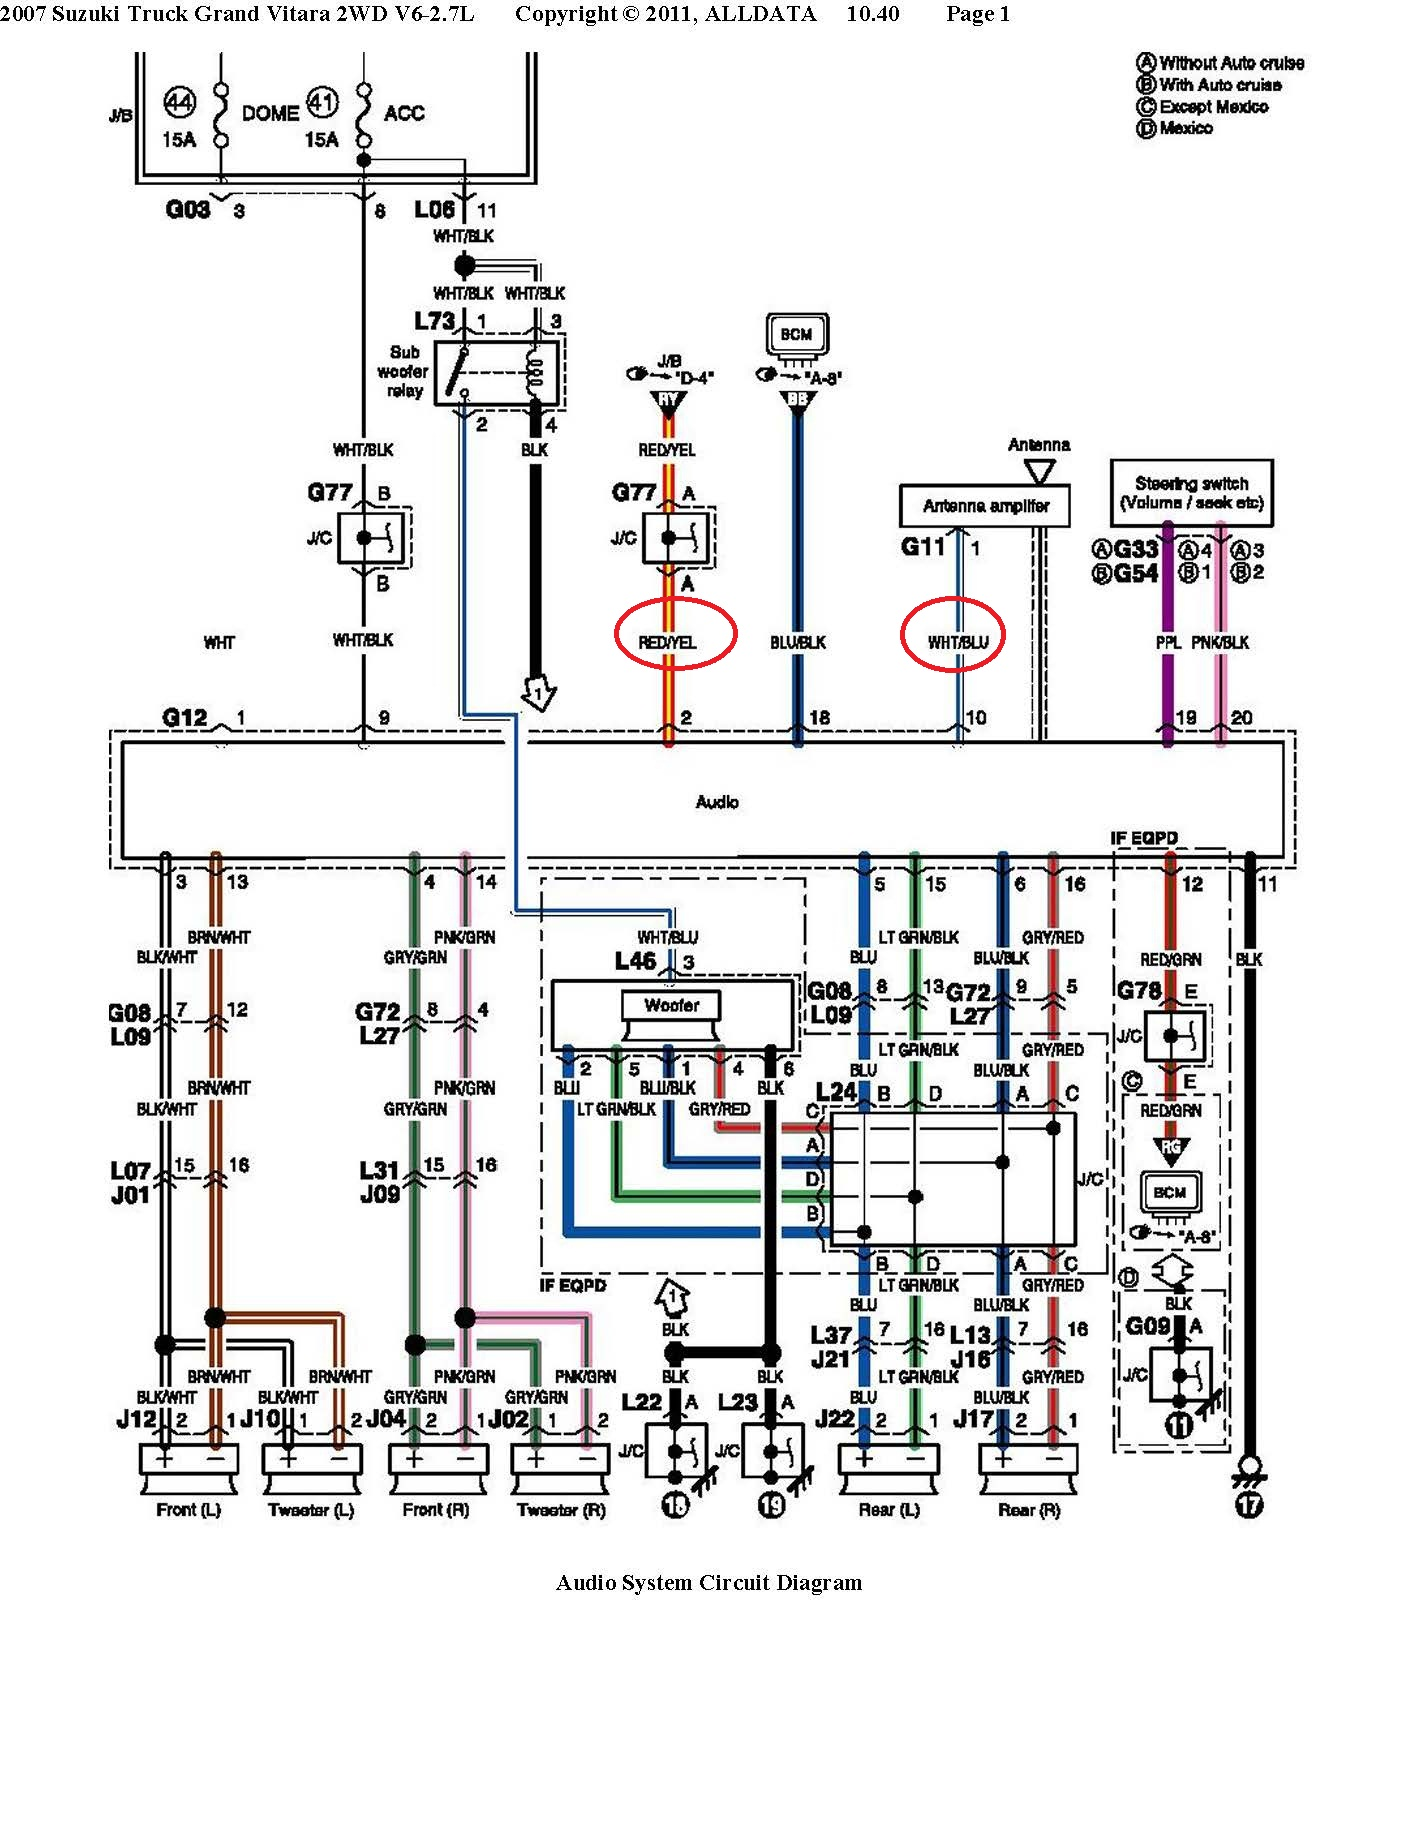 Suzuki Car Radio Stereo Audio Wiring Diagram Autoradio Connector Basic Speaker Diagrams Wire Installation Schematic Schema Esquema De Conexiones Stecker Konektor Connecteur Cable